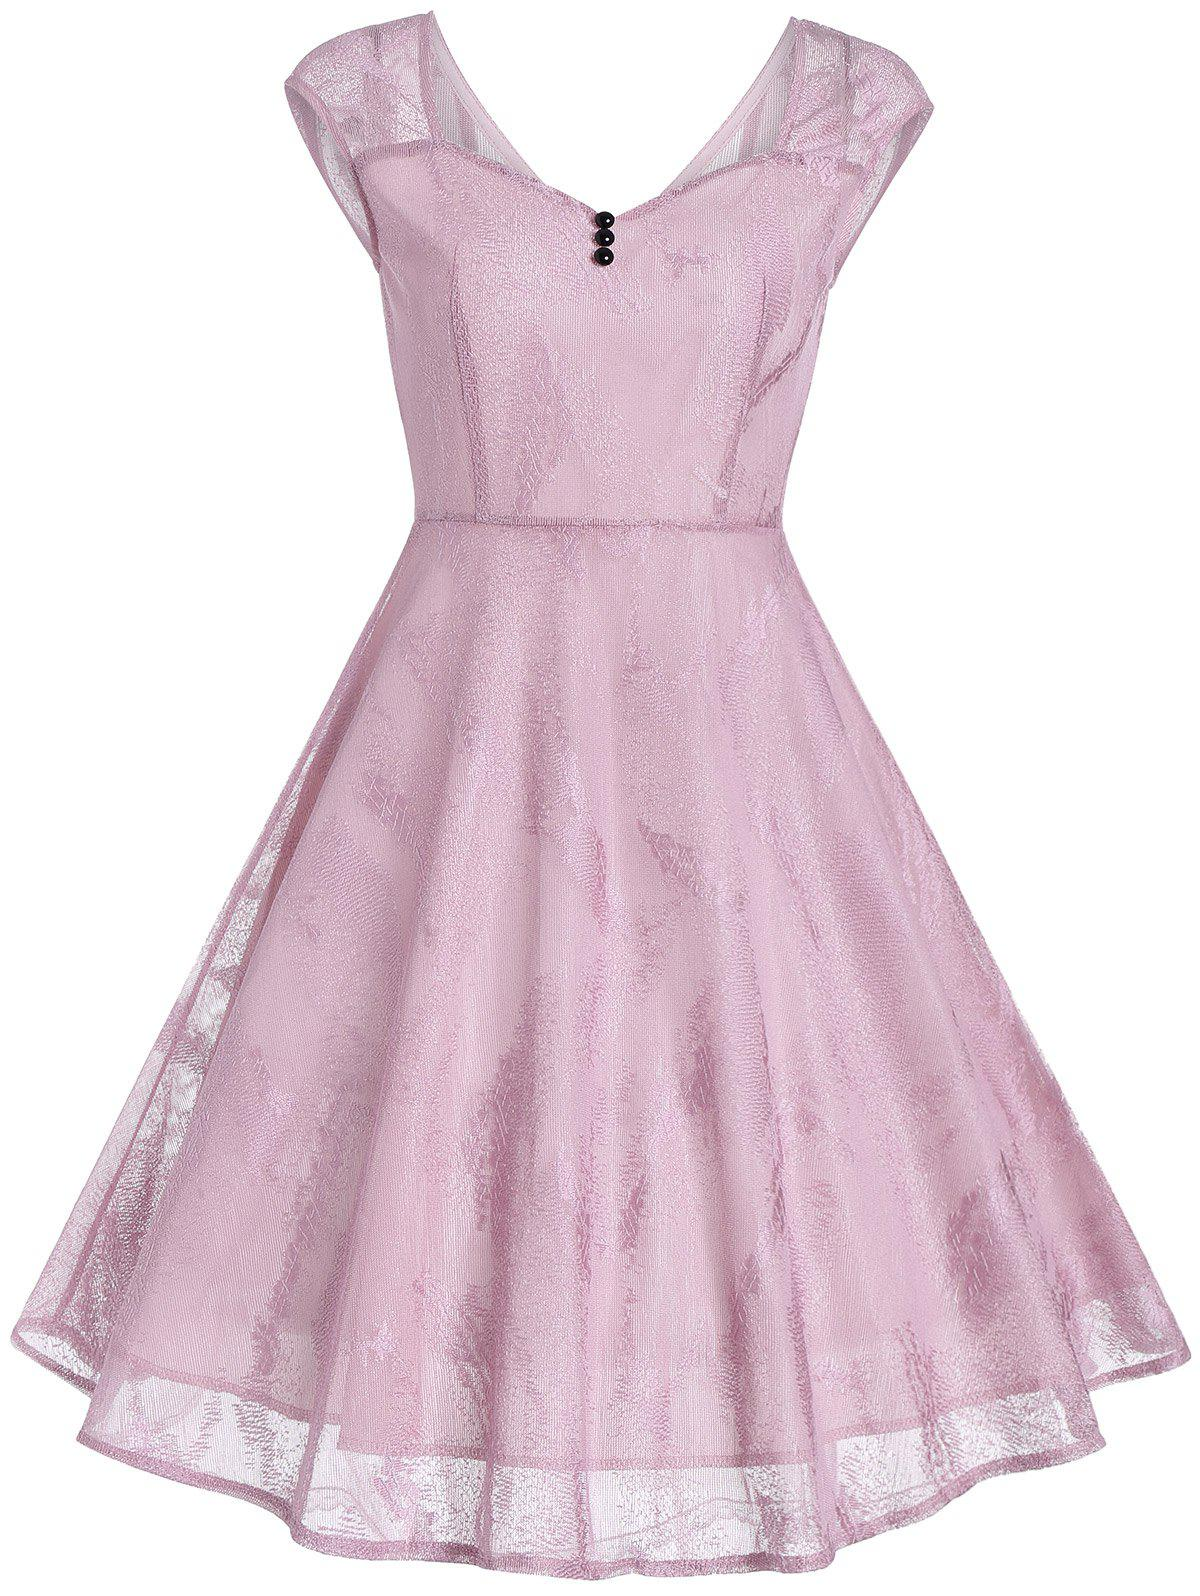 Vintage Buttons Embellished Lace Fit and Flare Dress - PINK 2XL